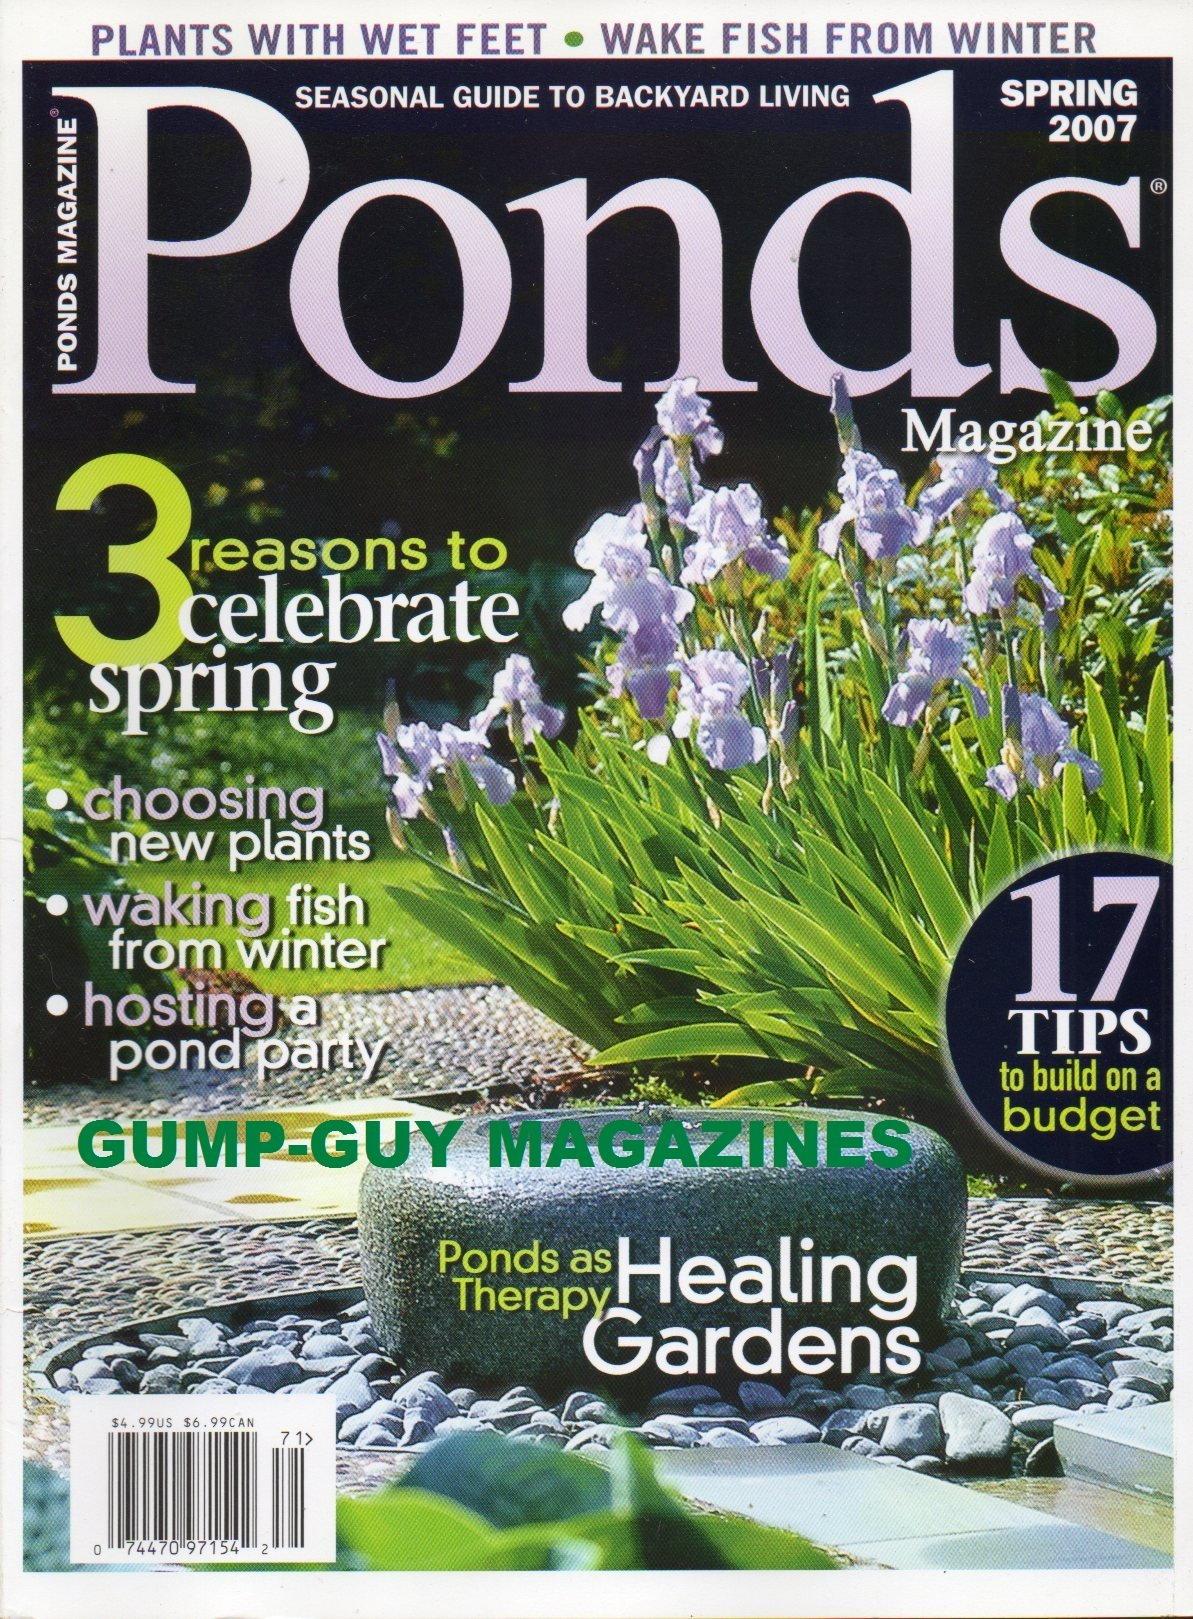 Ponds Spring 2007 Magazine SEASONAL GUIDE TO BACKYARD LIVING Plants With Wet Feet WAKE FISH FROM WINTER Choosing New Plants HOSTING A POND PARTY Ponds As Therapy Healing Gardens PDF